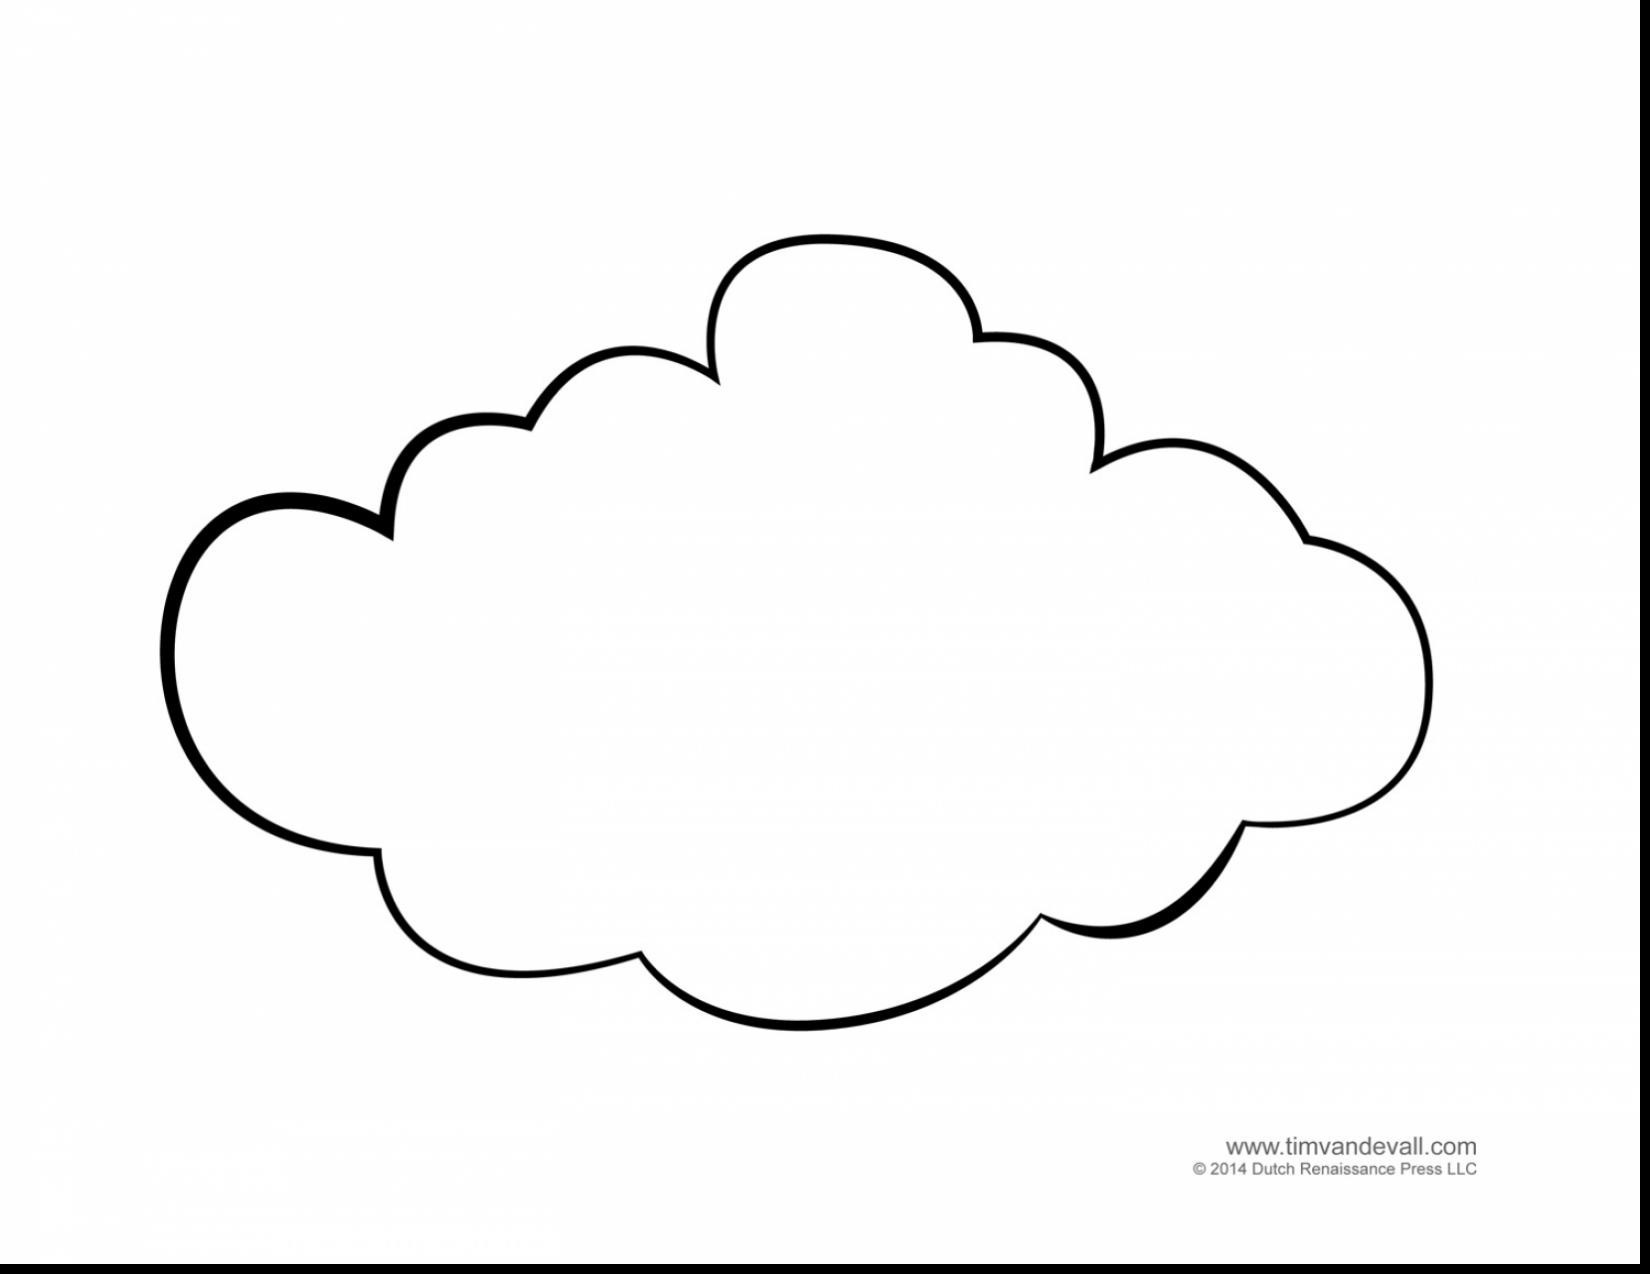 Cloud Coloring Page Free Printable Cloud Coloring Pages For Kids ...